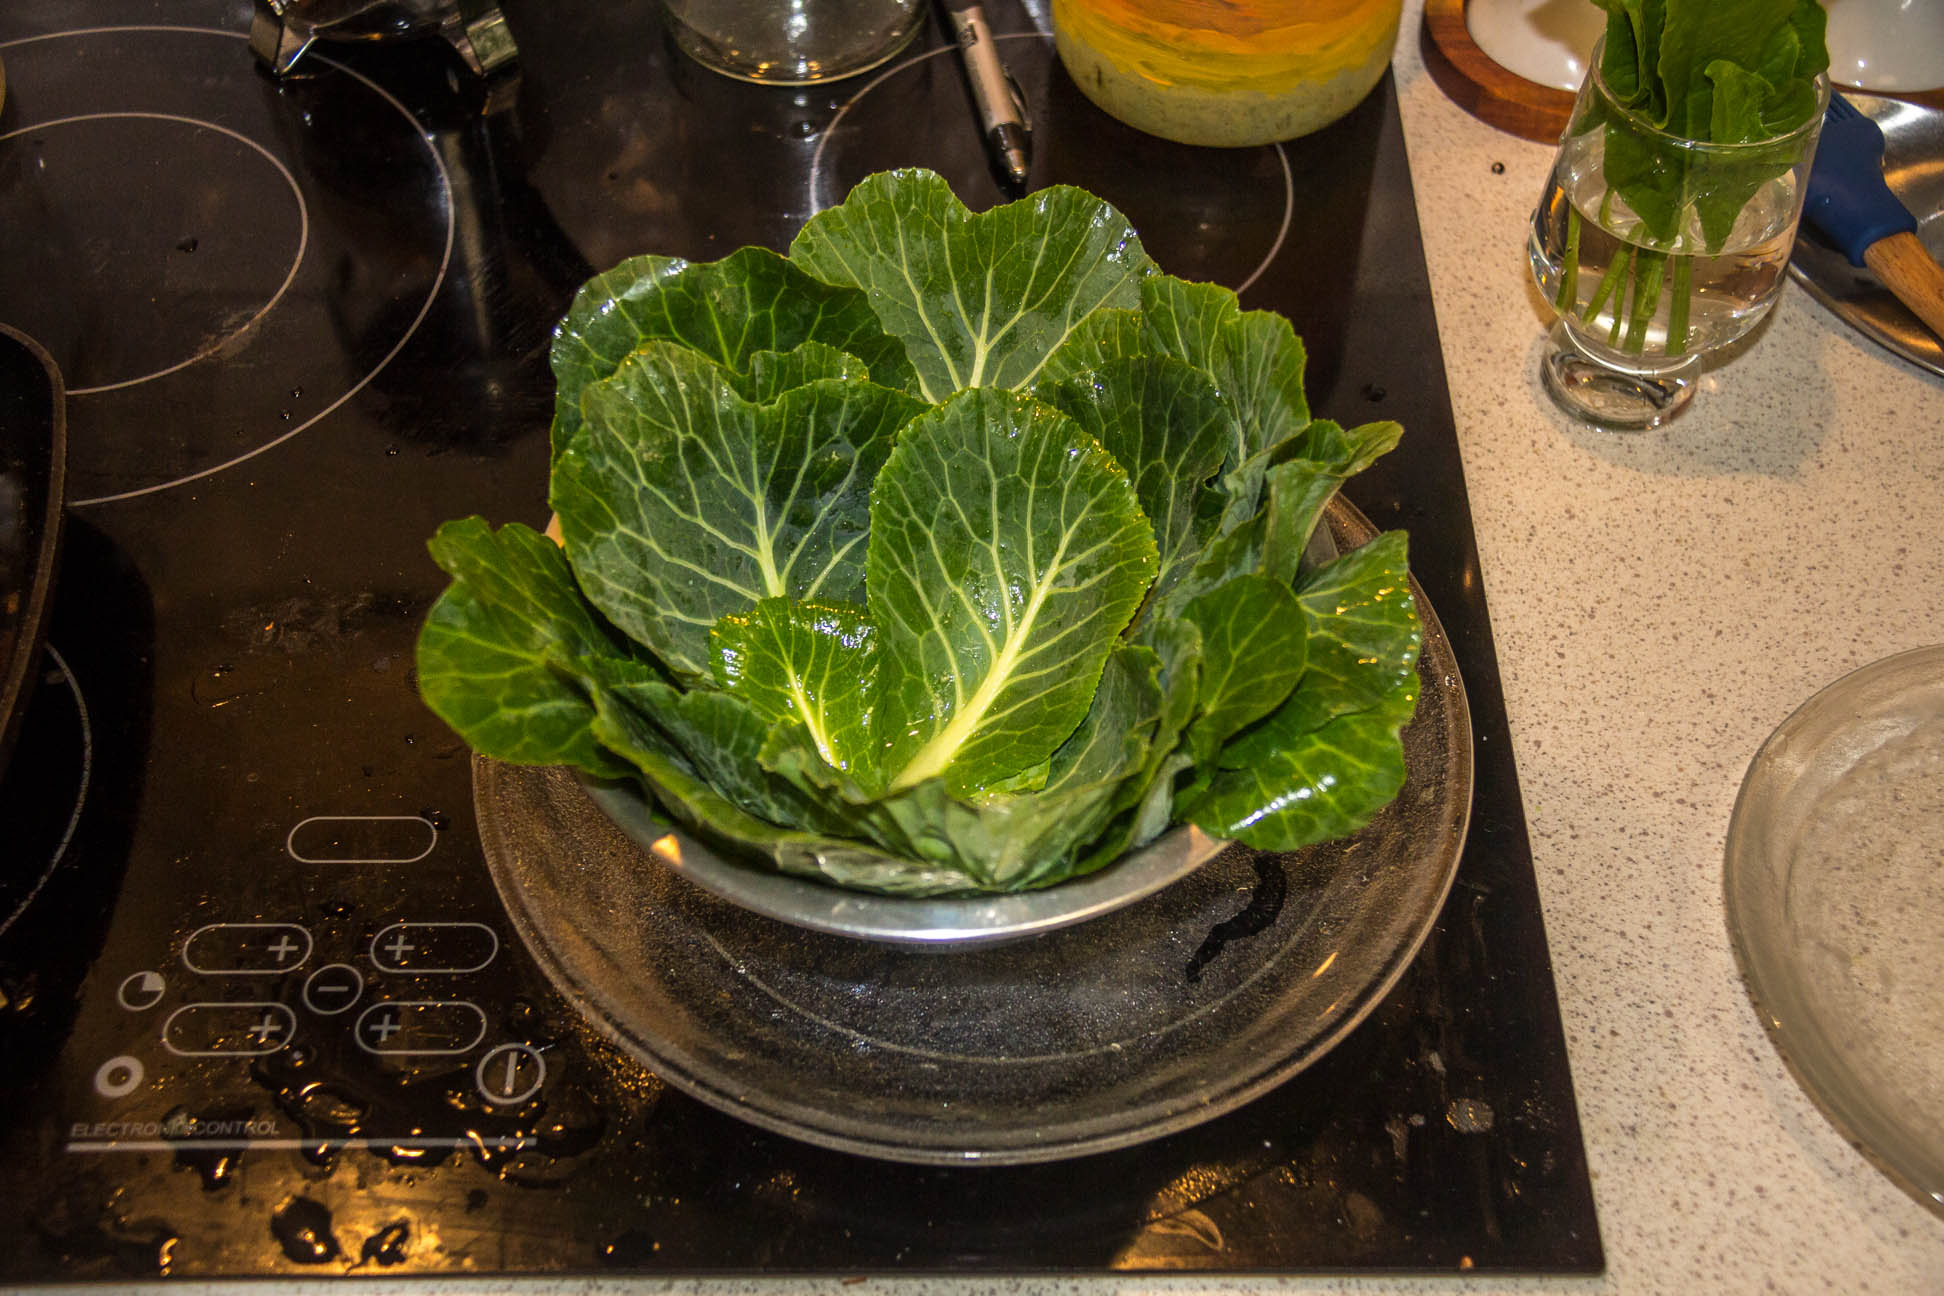 03/07/15 Day 80: Hmm.. i would have to say it's a successful experiment. I managed to harvest about 100g and it looks like a small cabbage when put in a bowl =p